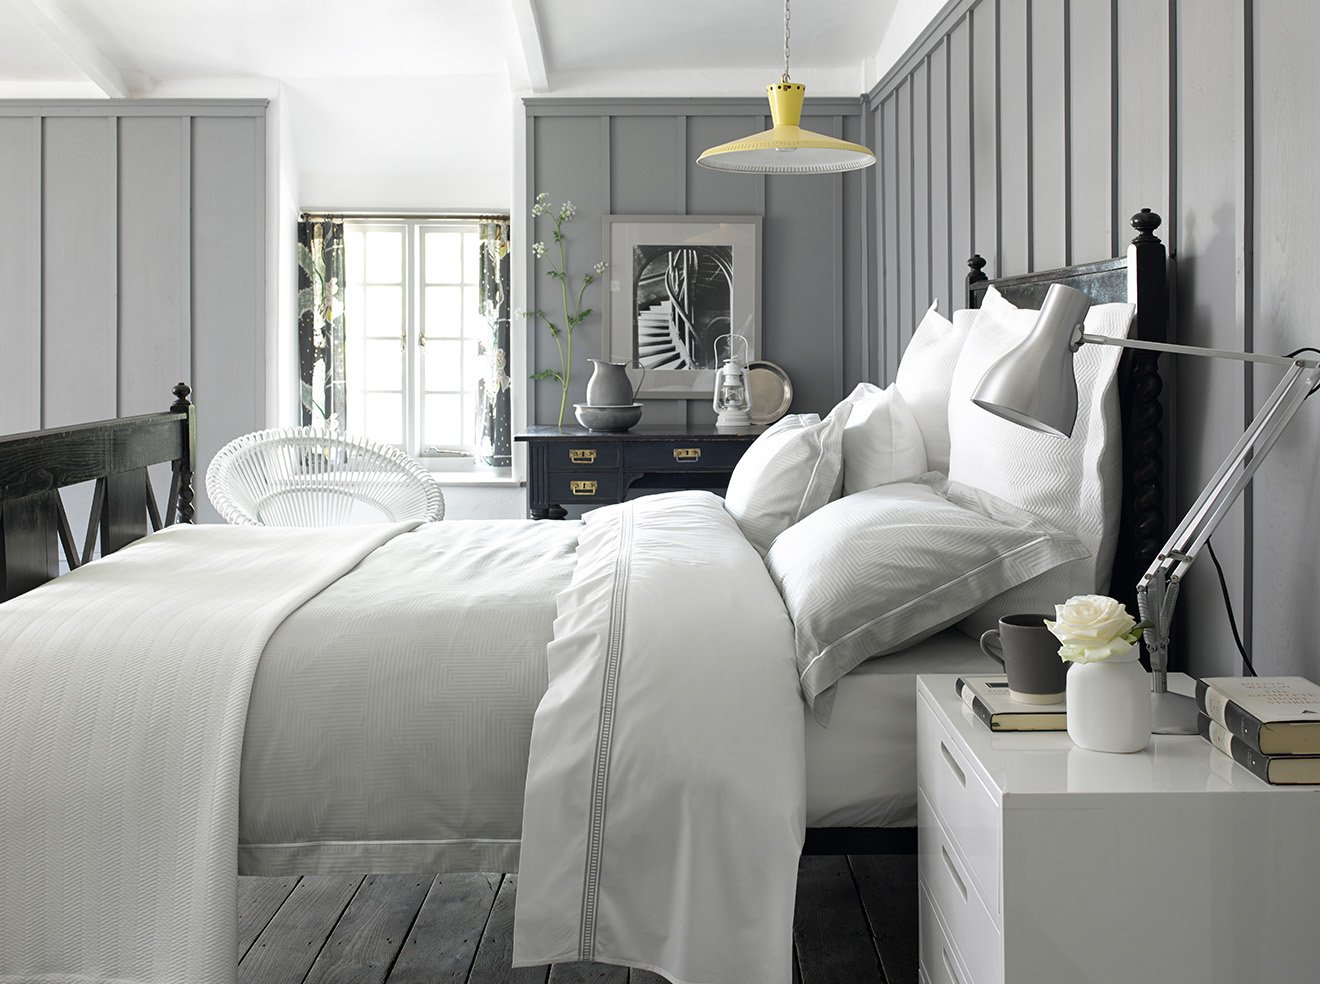 Recent Research Report on Luxury Bedding Market Announced by Planet Market Reports Covers Latest Products, New Fashion, Industry